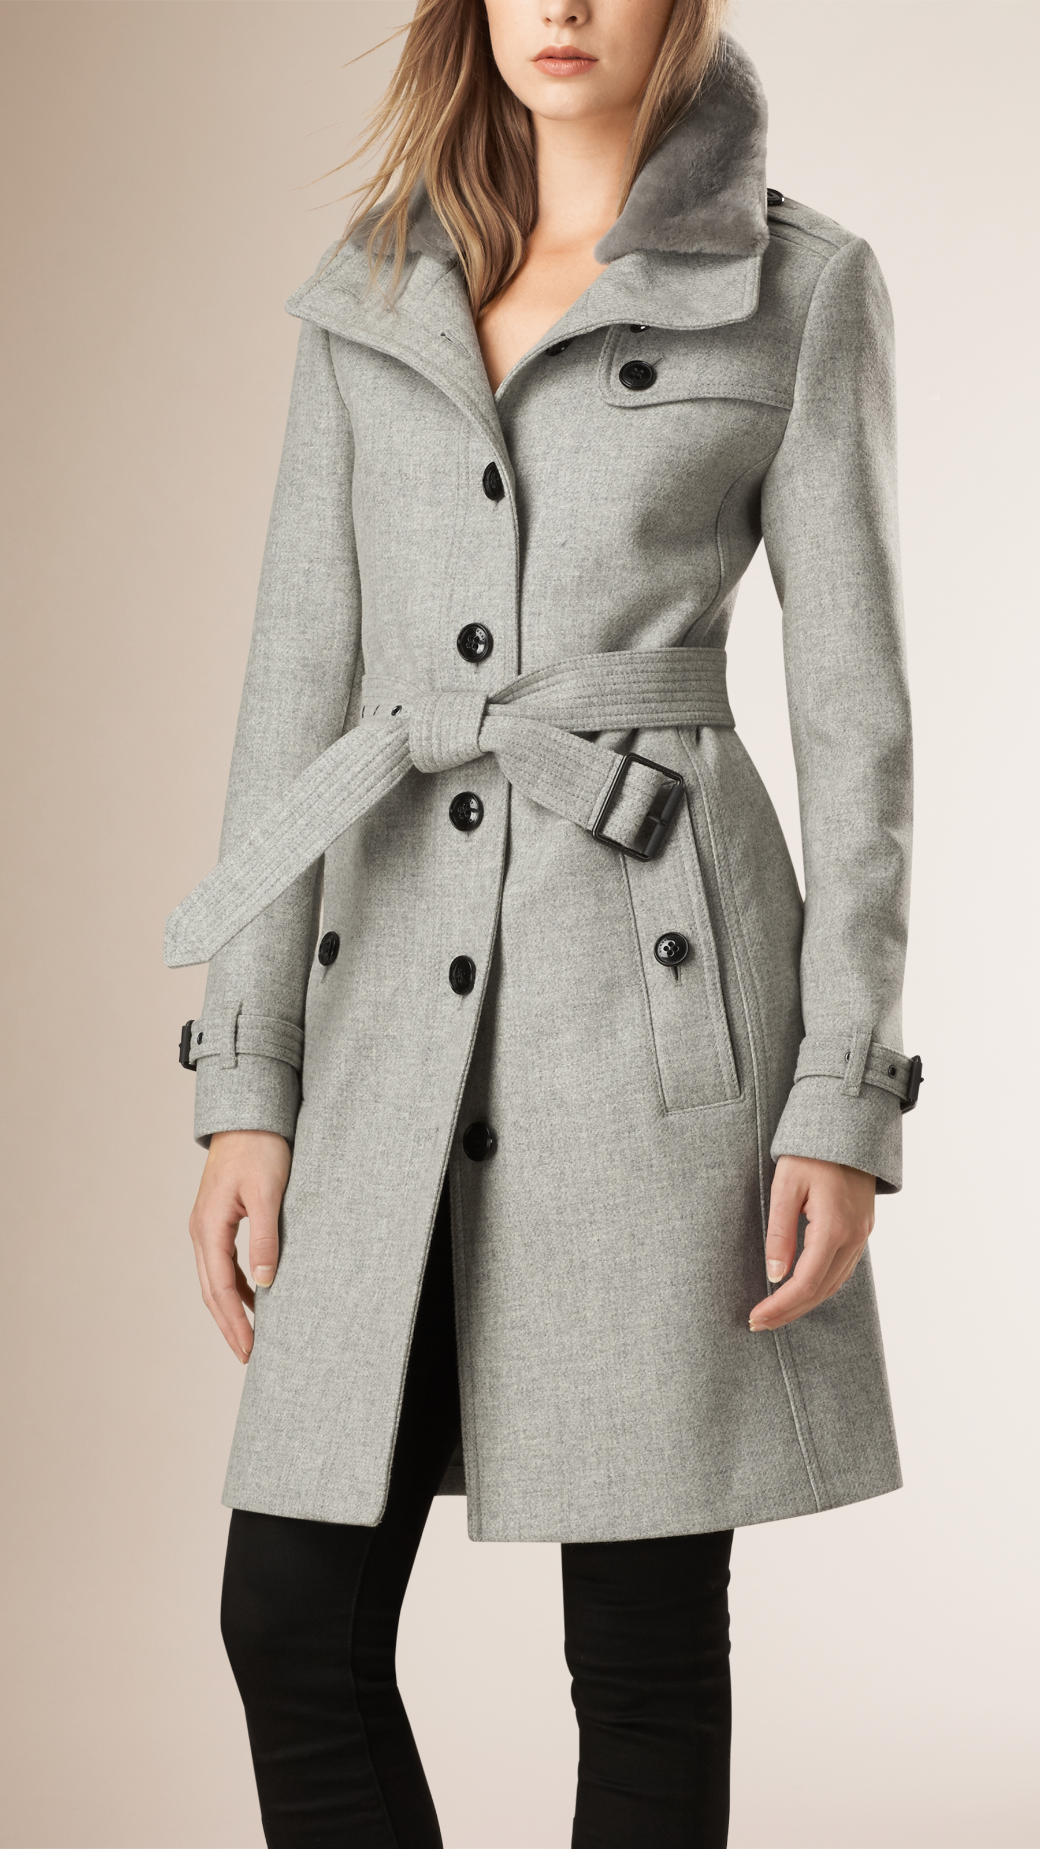 Burberry Wool Blend Trench Coat With Shearling Collar in Gray | Lyst